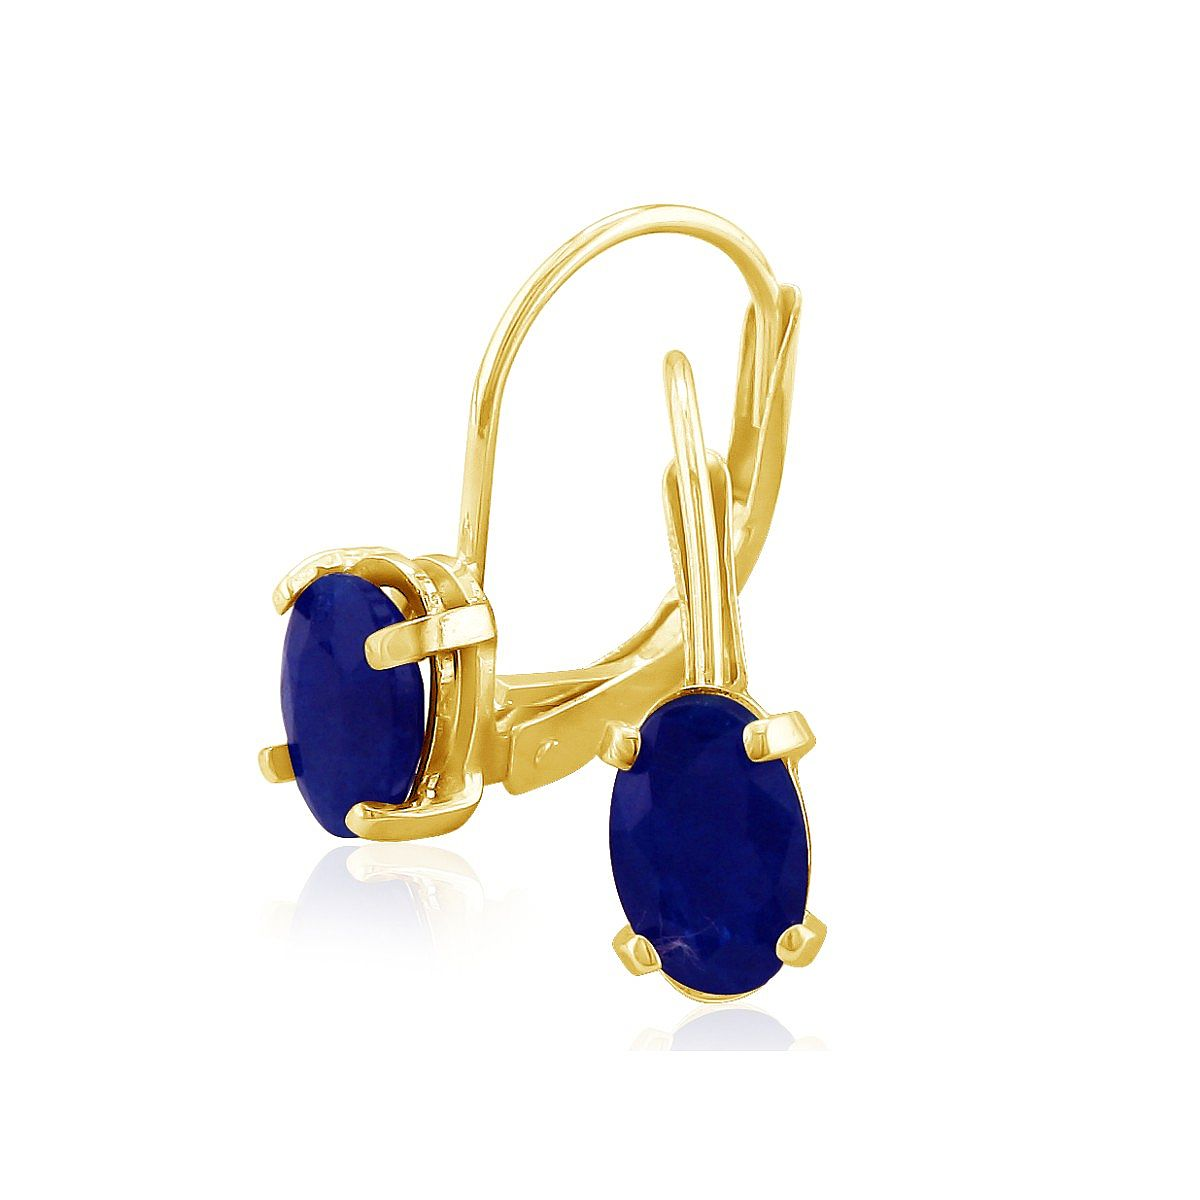 1ct Oval Sapphire Solitaire Leverback Earrings in 14k Yellow Gold